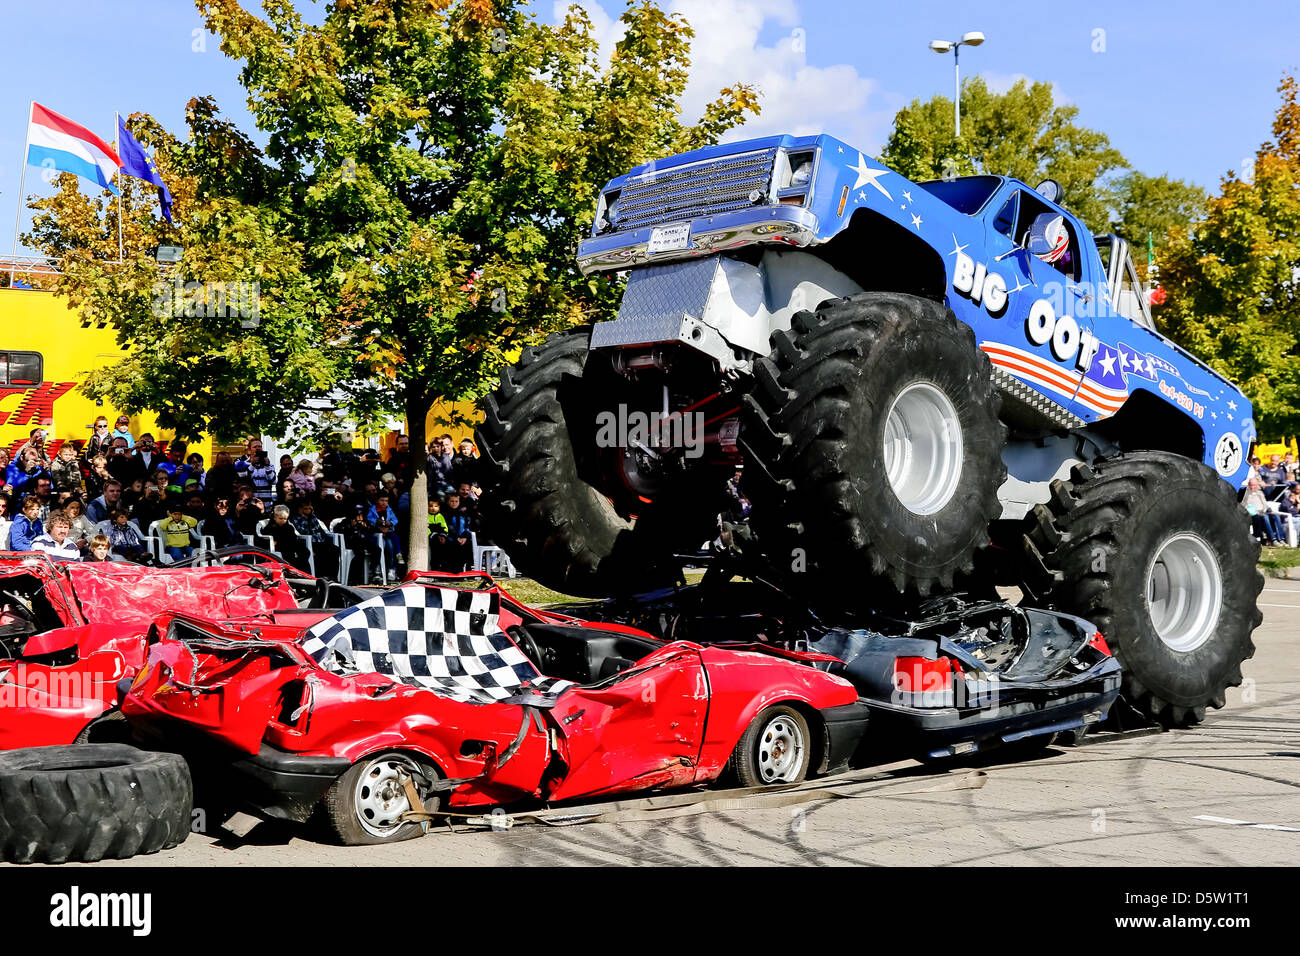 Monster Trucks Drive Over Old Cars At The Monster Truck Show In